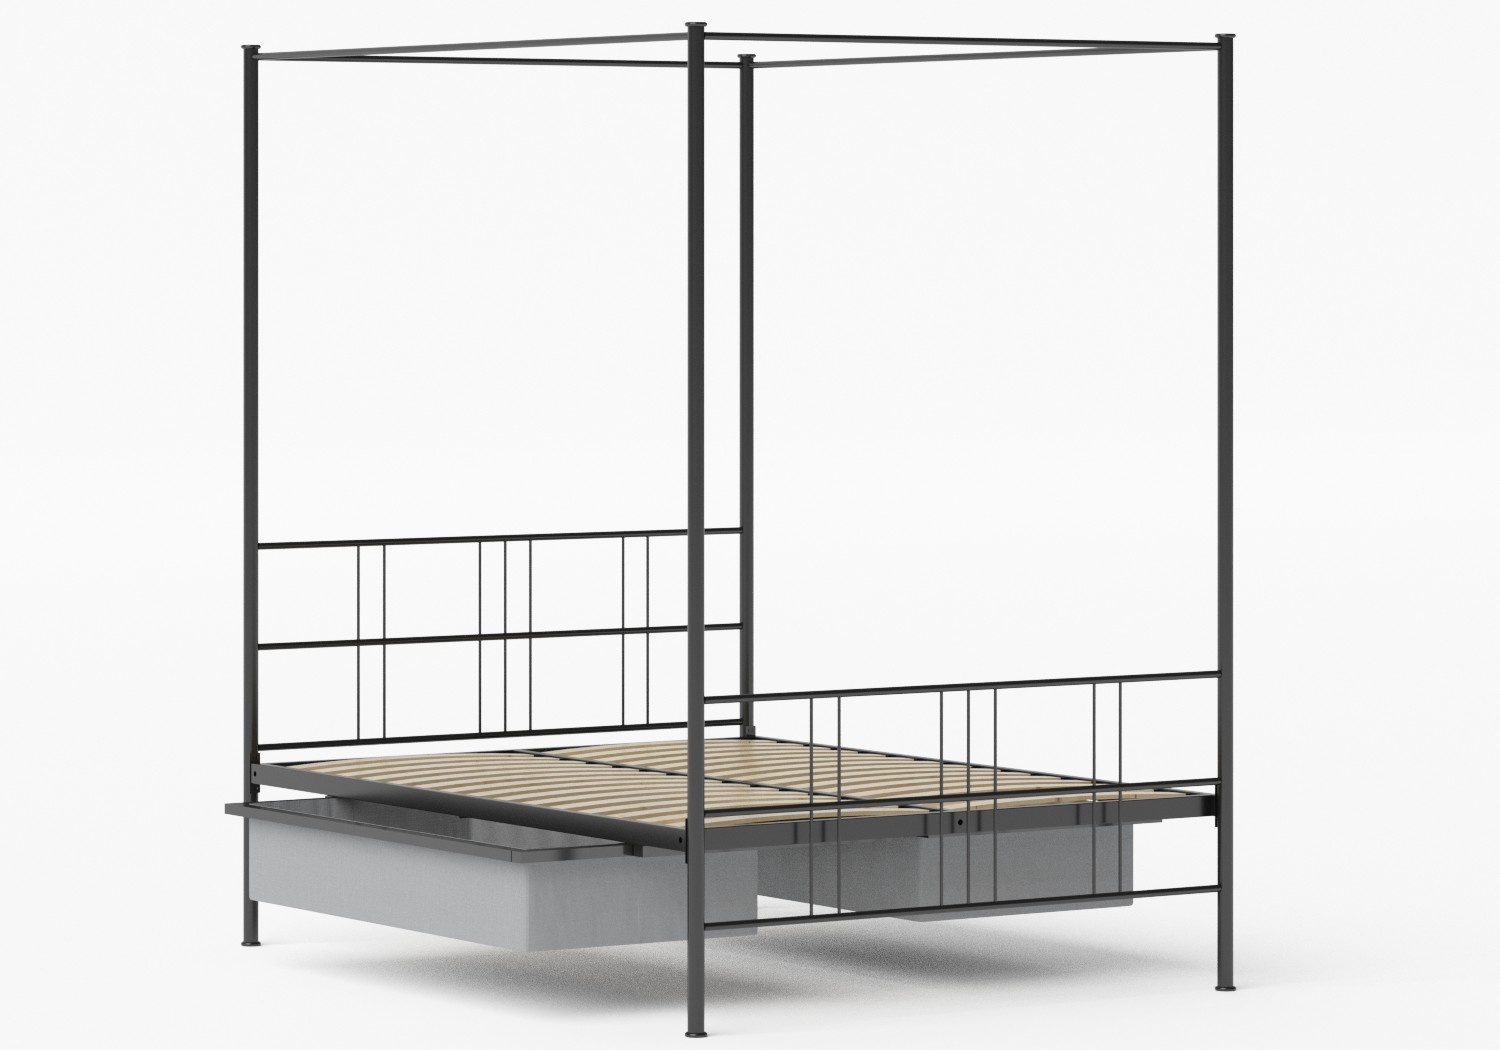 Toulon Iron/Metal Bed in Satin Black shown with underbed storage